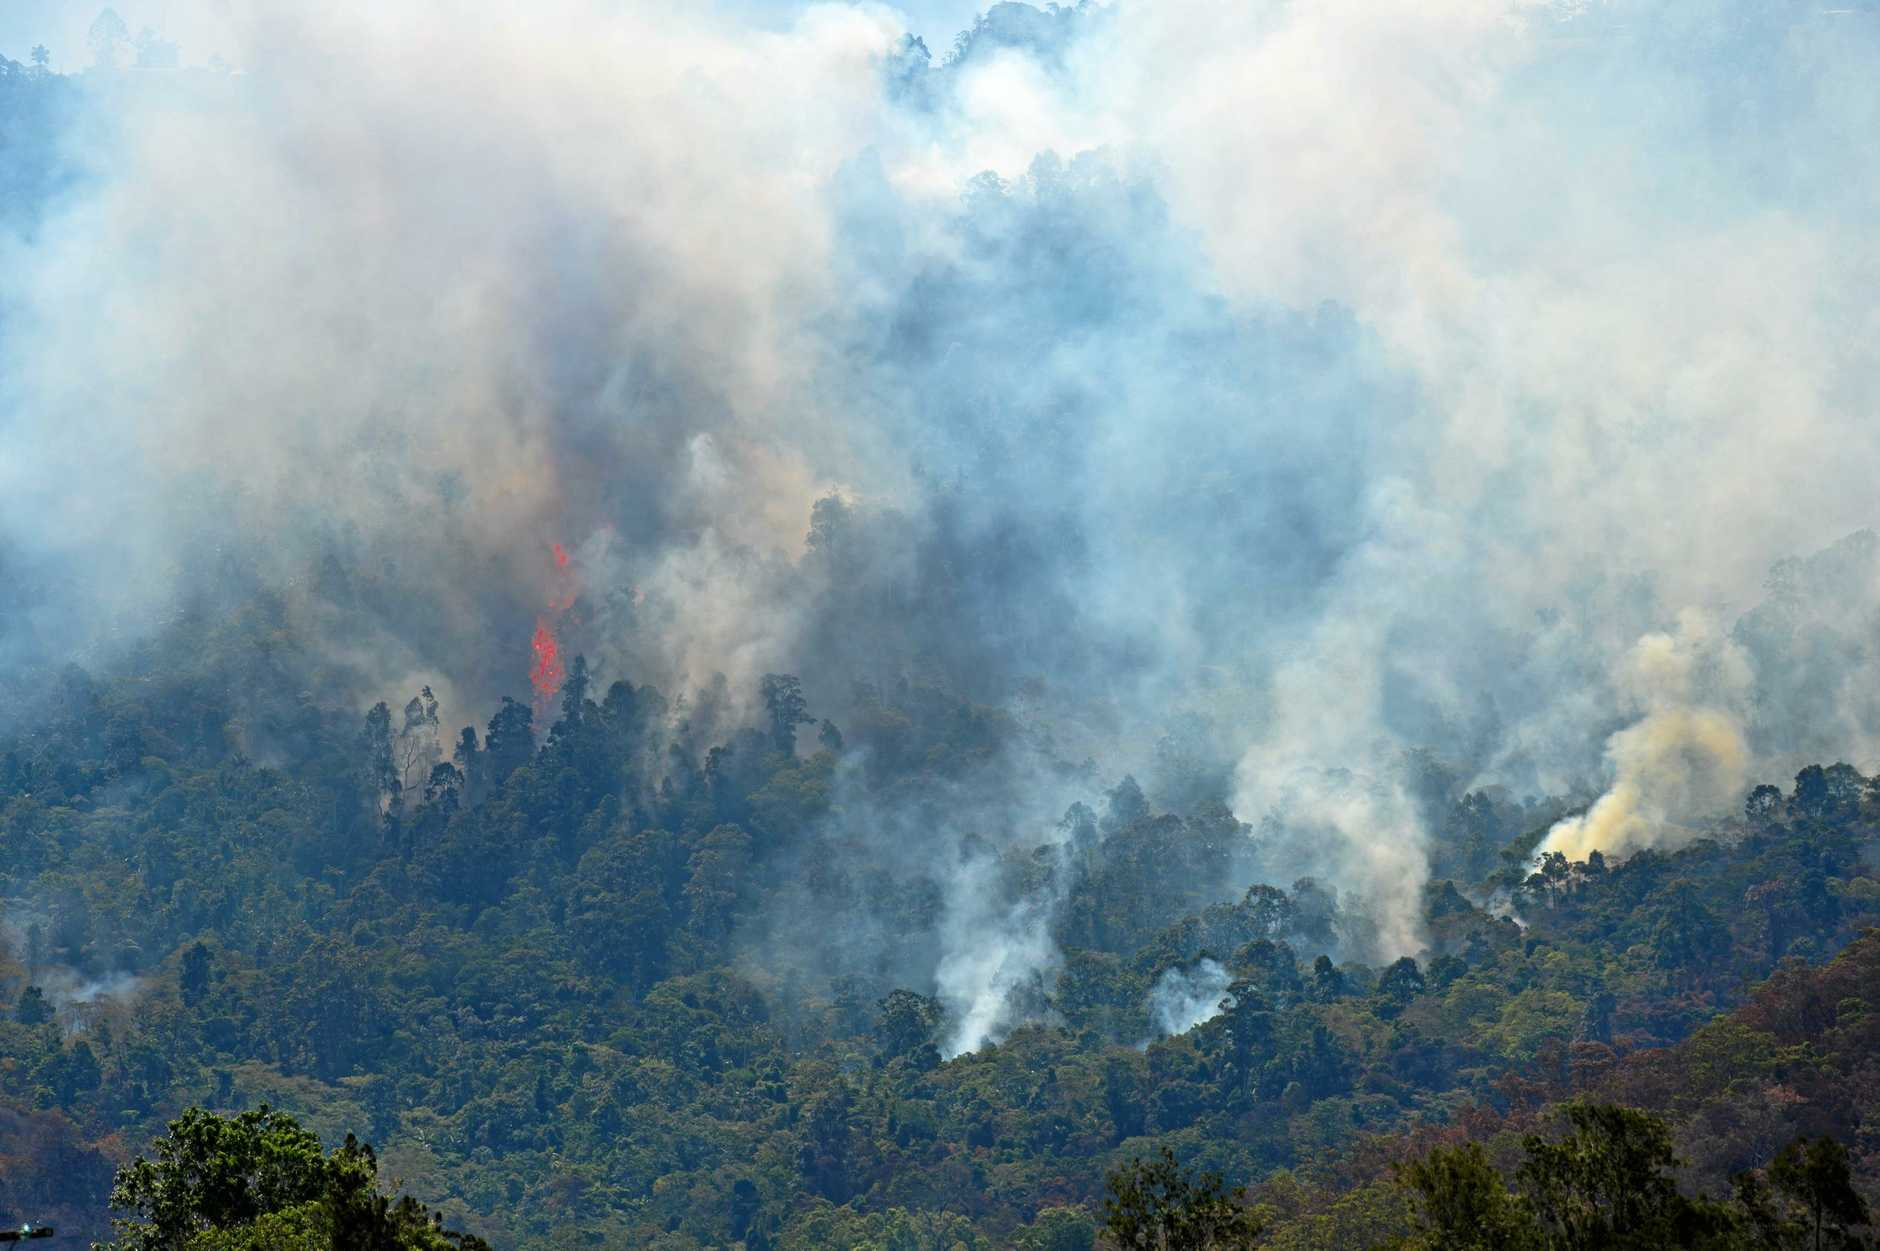 UNDER THREAT: Flames leapt above the rainforest as the fires threatened Eungella.